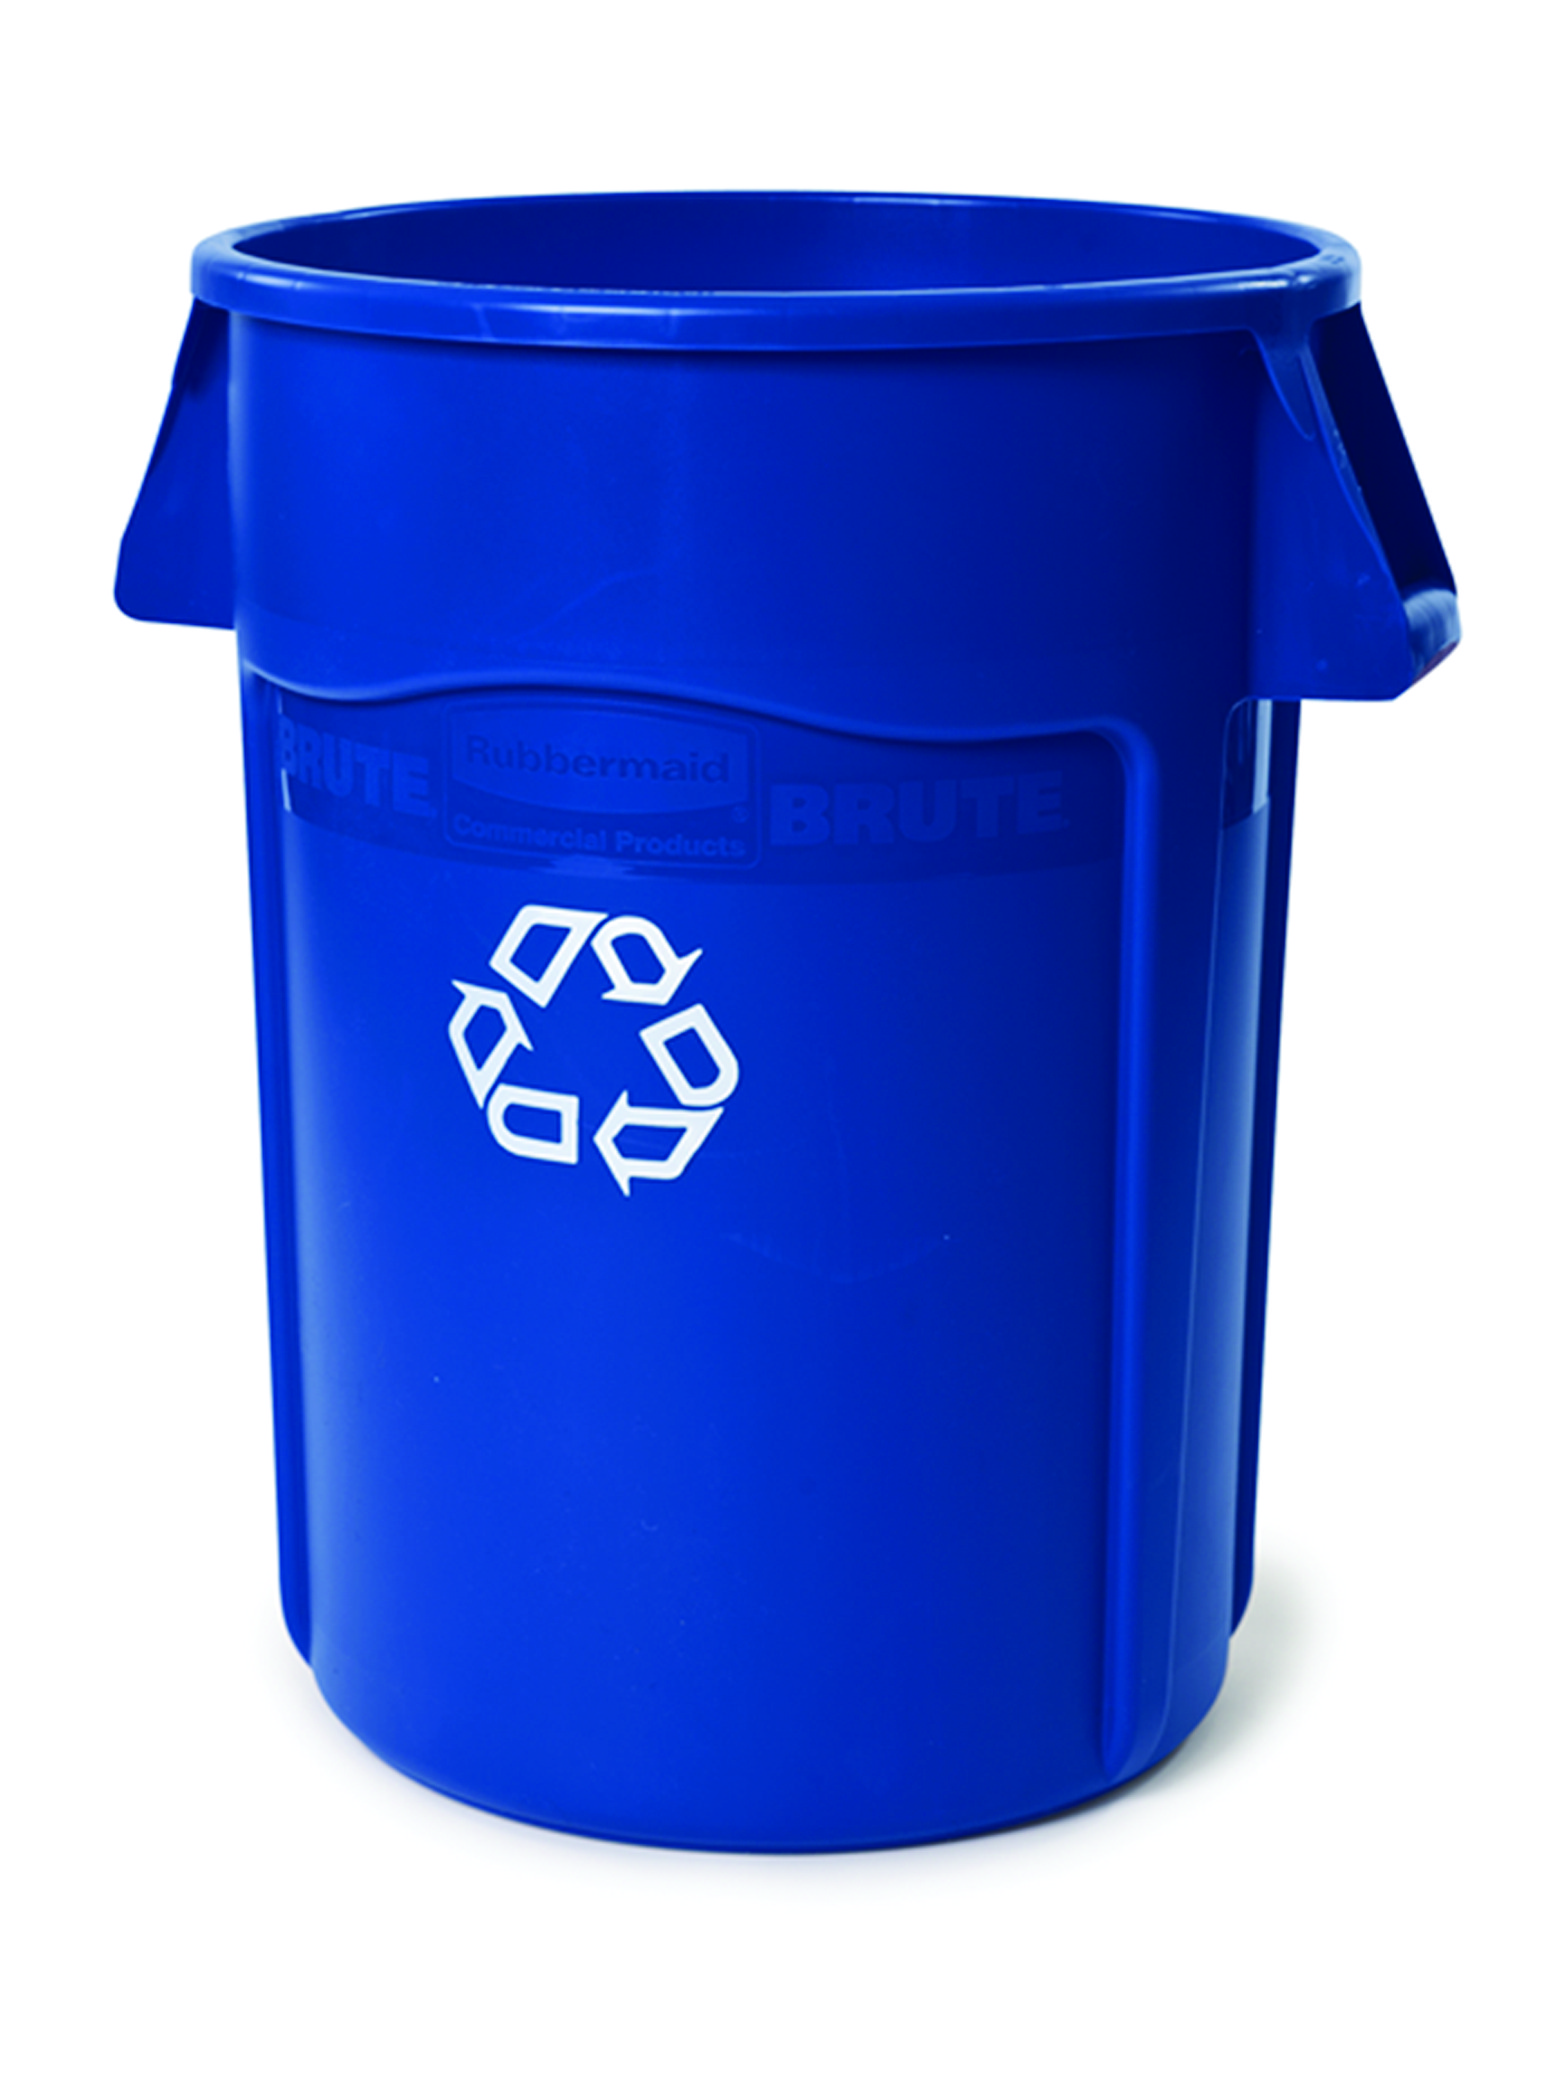 Rubbermaid 44Gallon BRUTE Blue Utility Recycling Container 2643